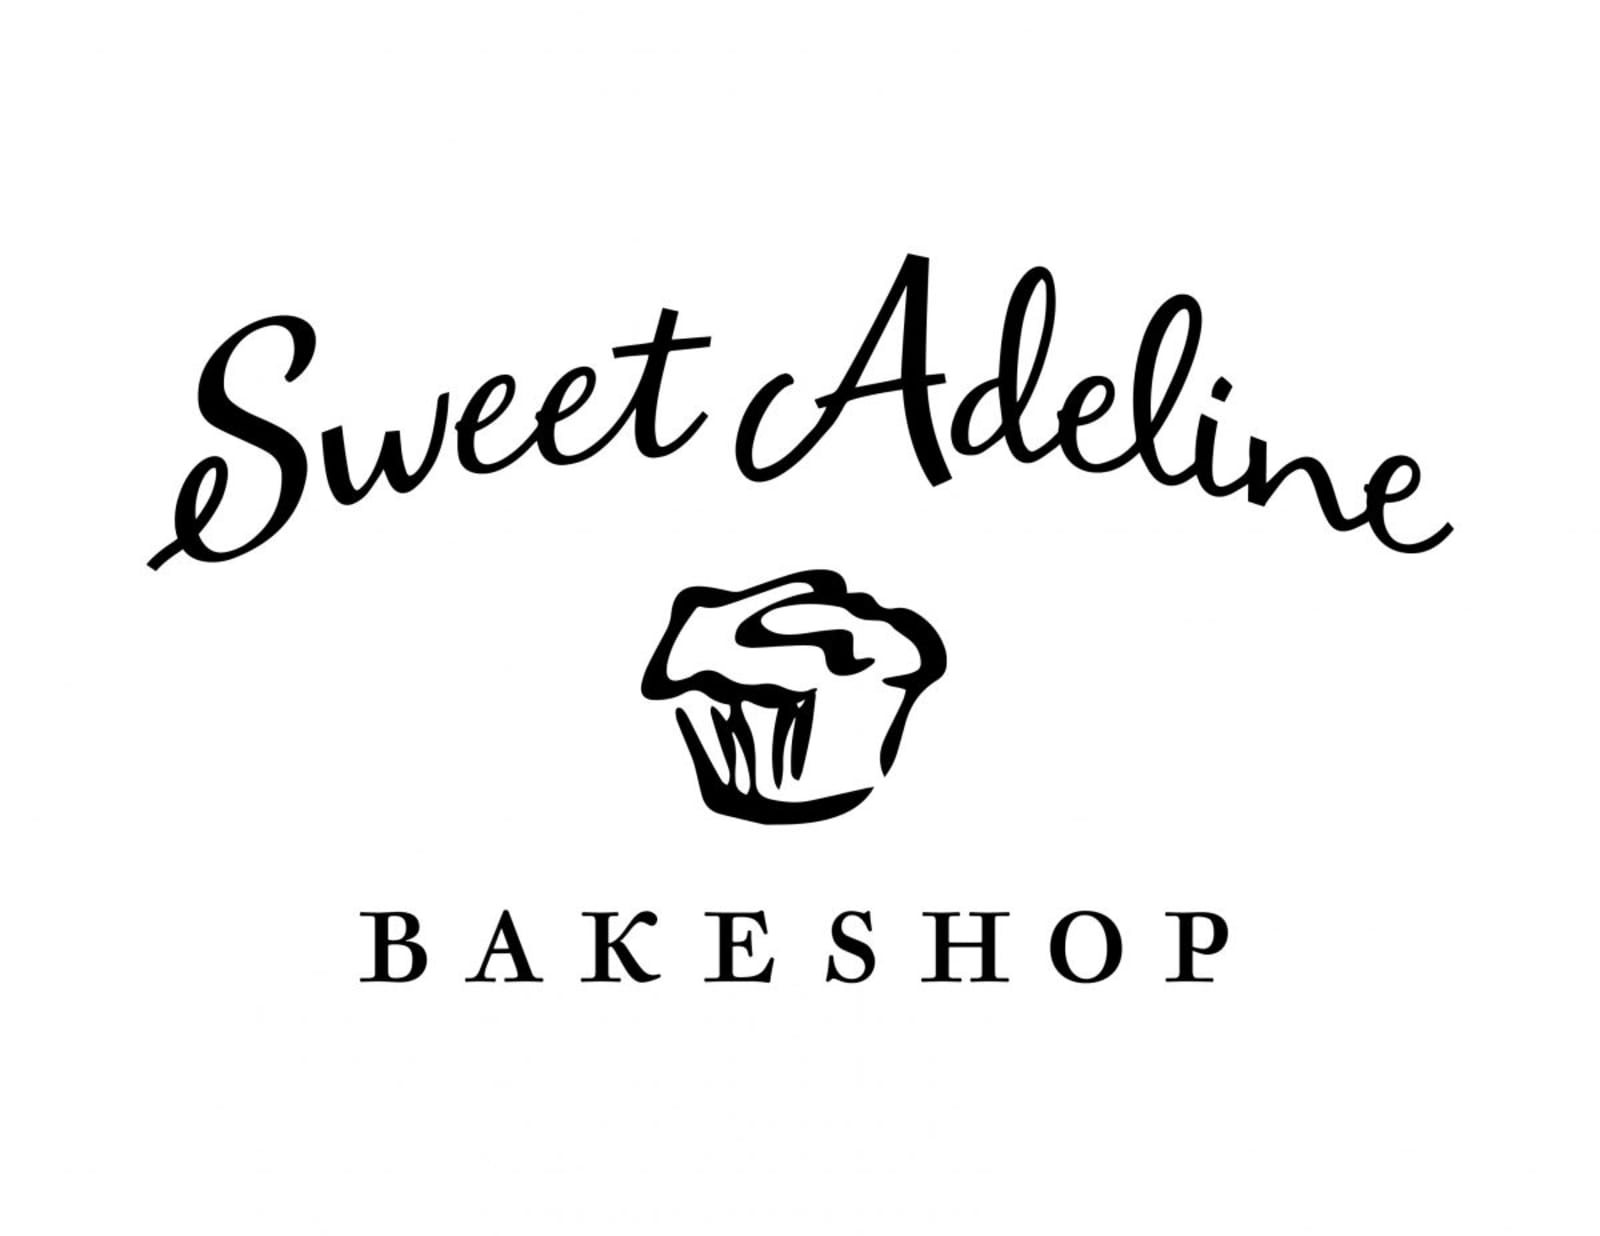 Gifts at Sweet Adeline Bakeshop